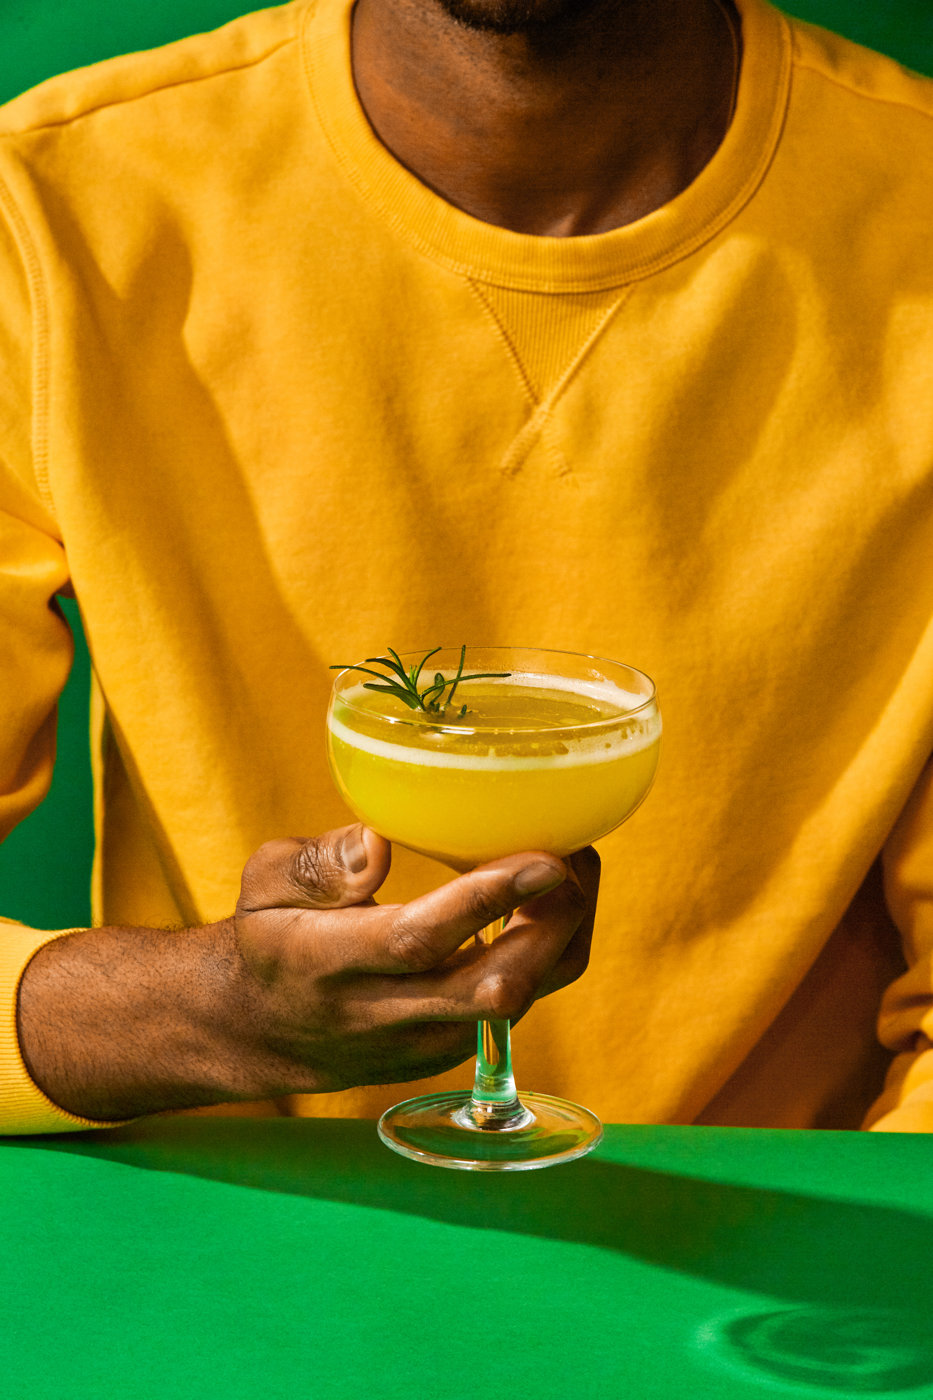 FY19_Avion_REPOSADO_CINCODEMAYO_NATIONAL_COCKTAIL_STILL_UNCROPPED_PINEAPPLEGINGERPUNCH-2242.JPG